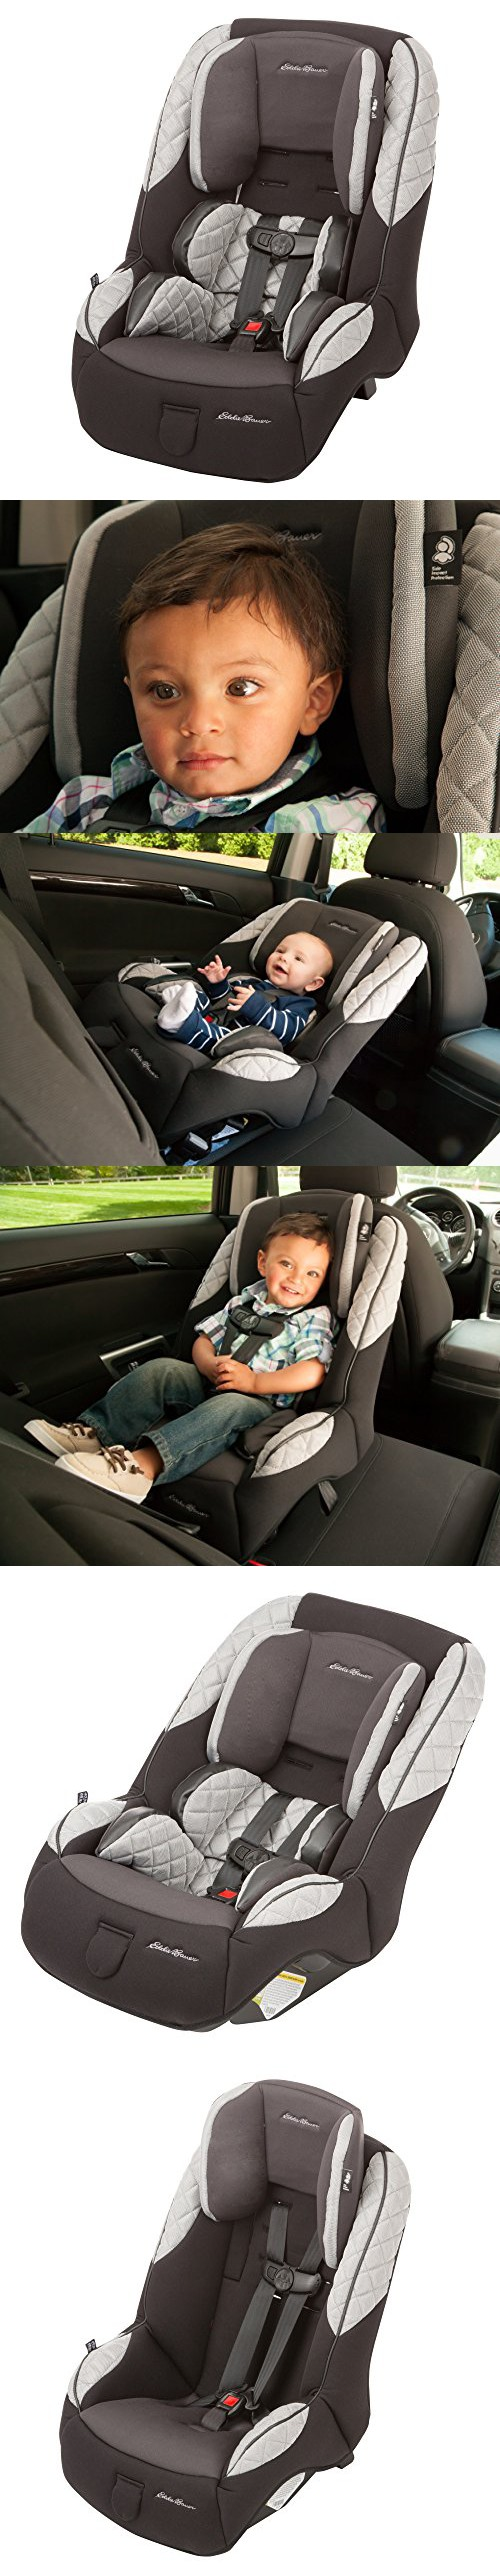 Eddie Bauer XRS 65 Convertible Car Seat Viewpoint